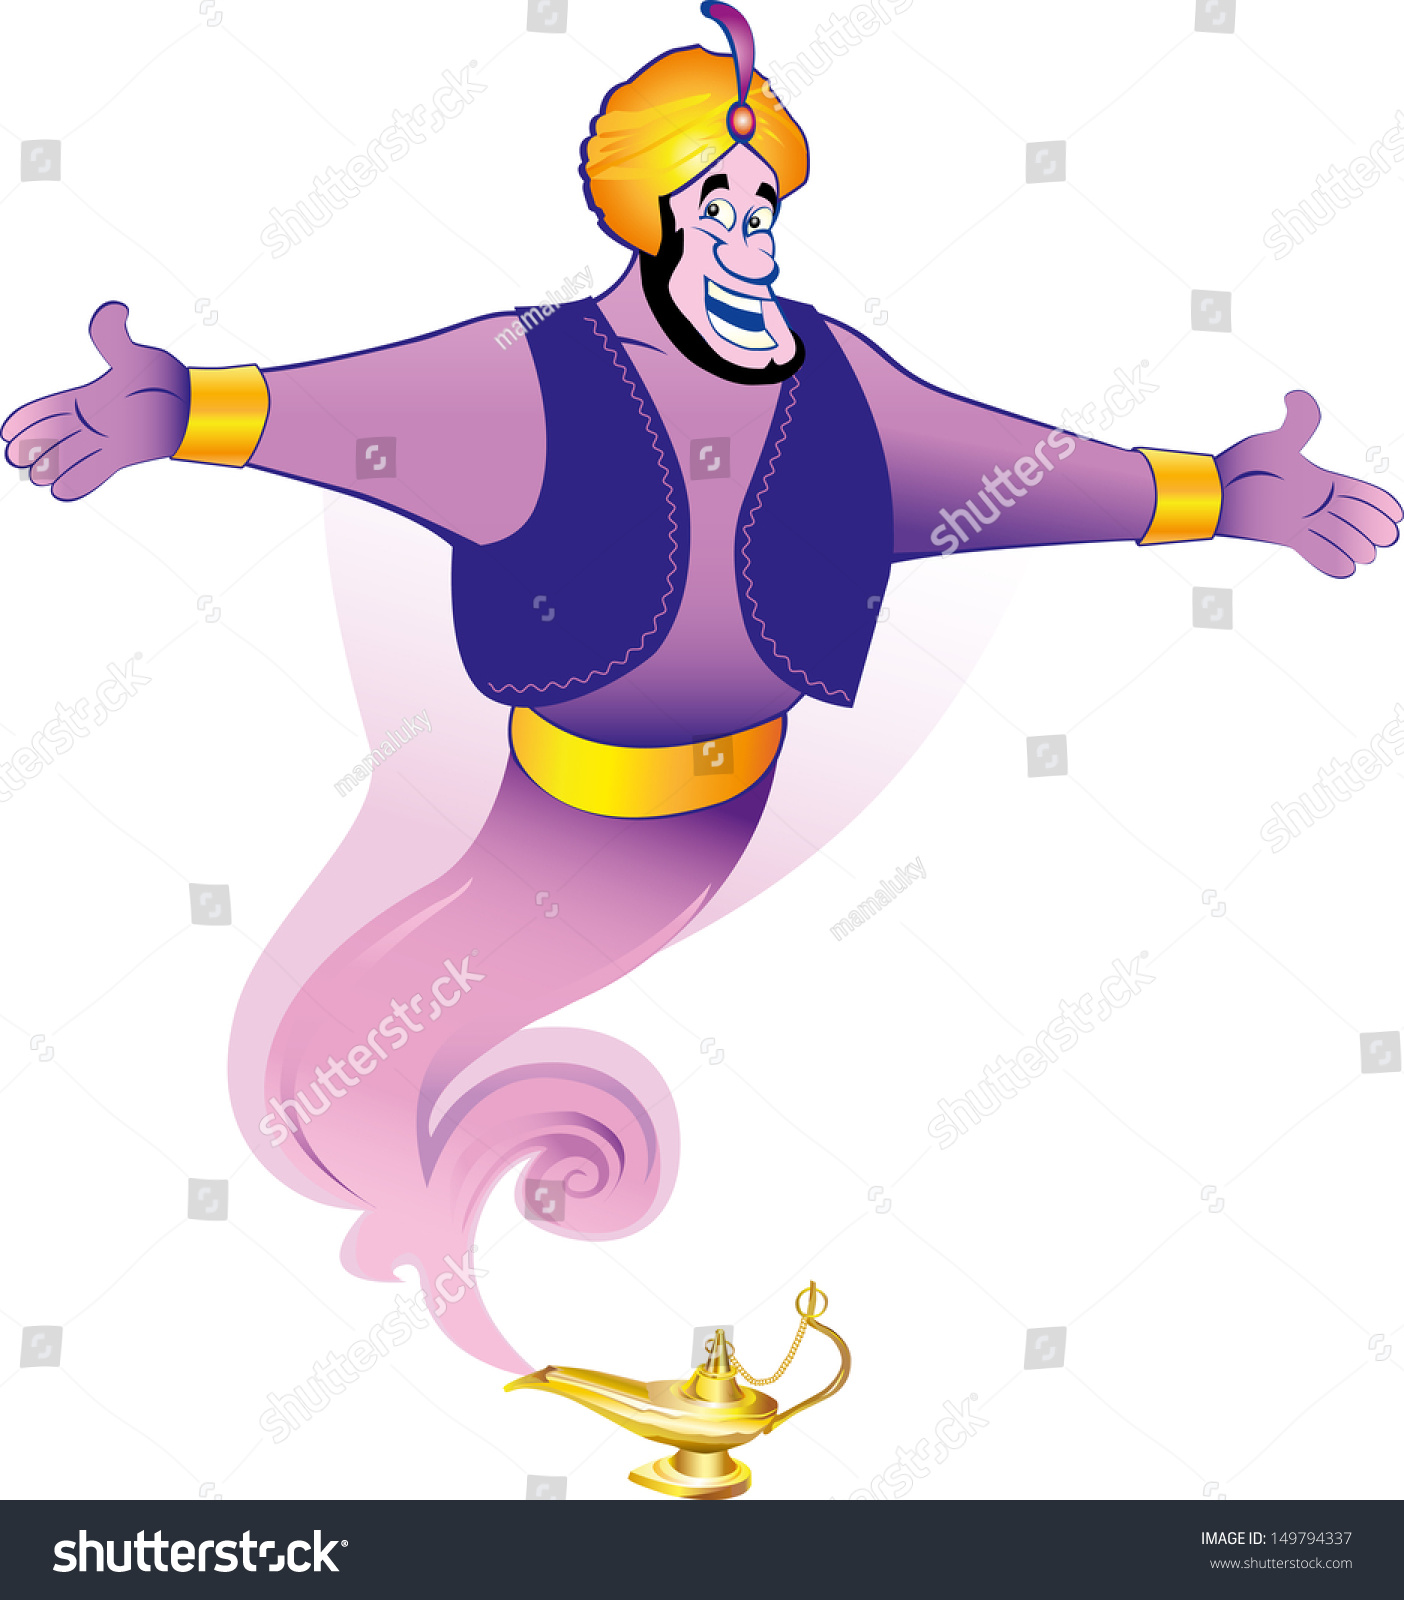 Illustration Magic Genie Appear Magic Lamp Stock Vector